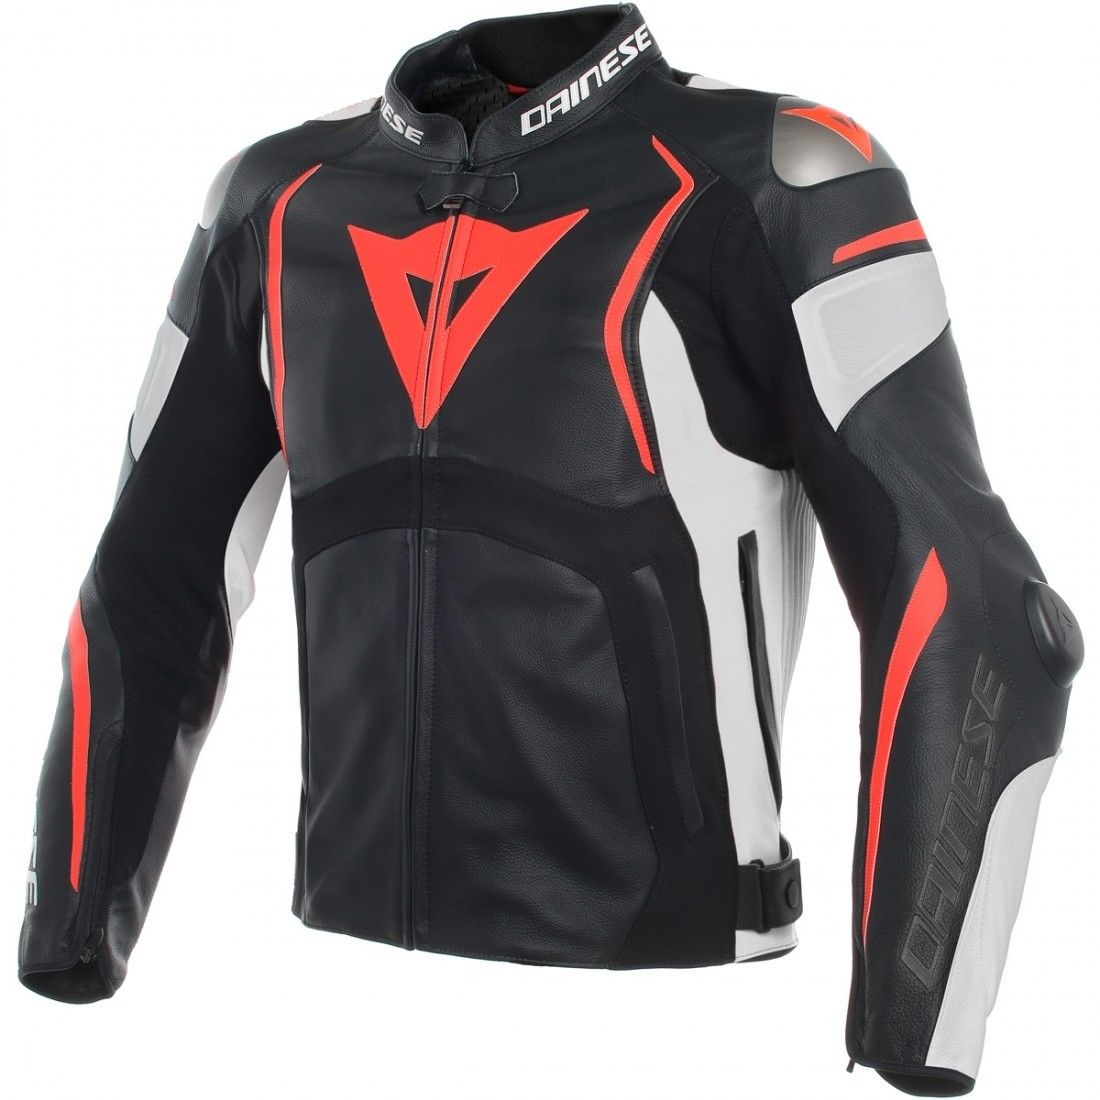 Dainese Mugello Black White Fluo Red Leather Motorcycle Jacket